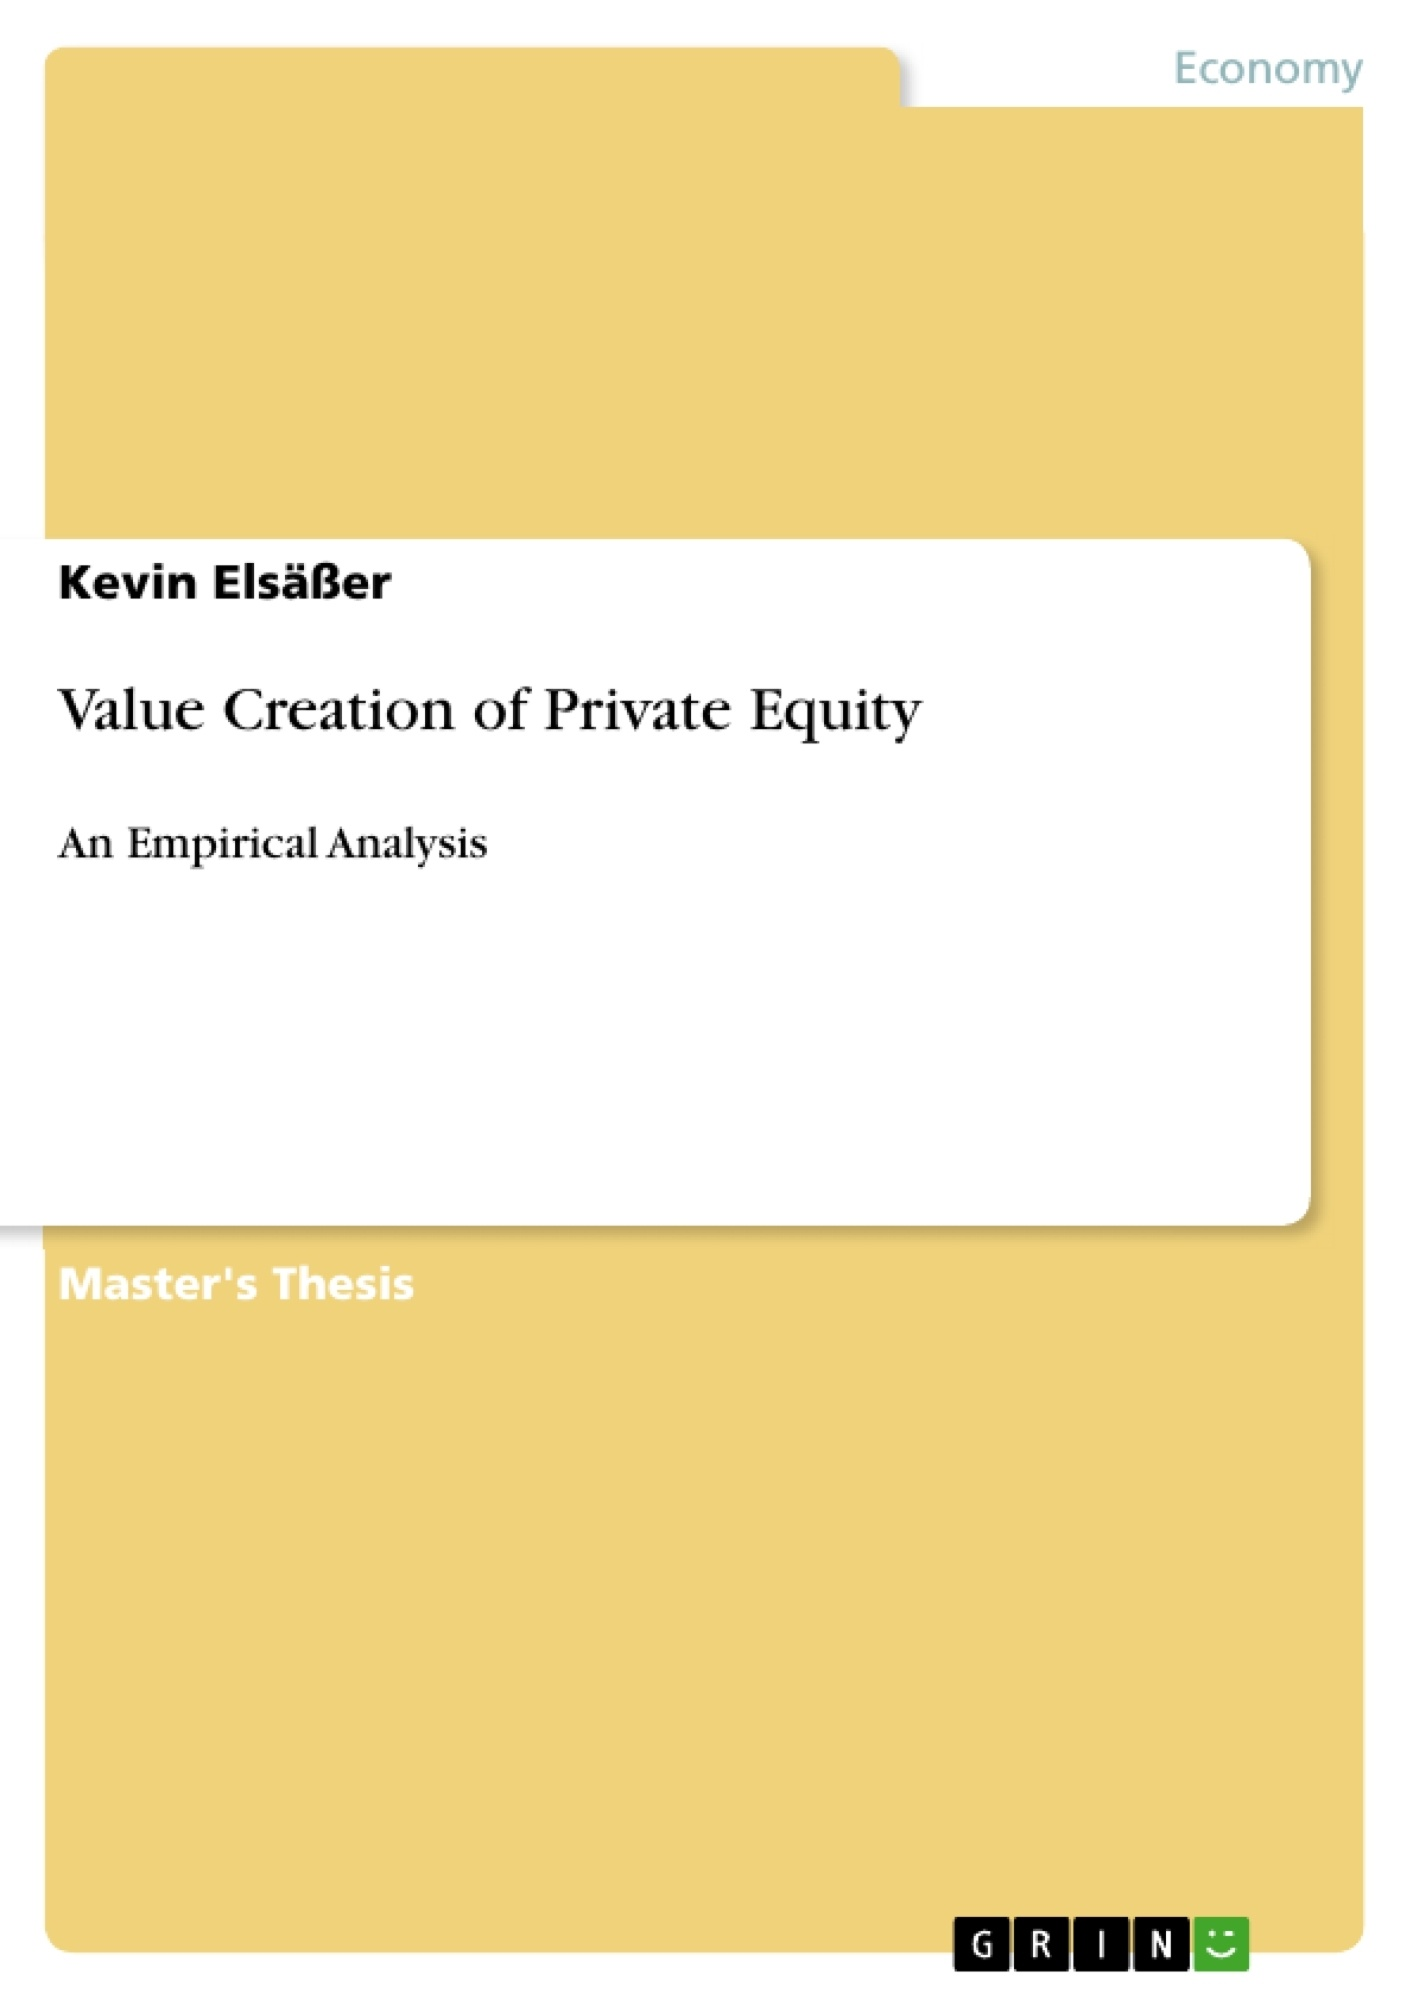 Title: Value Creation of Private Equity